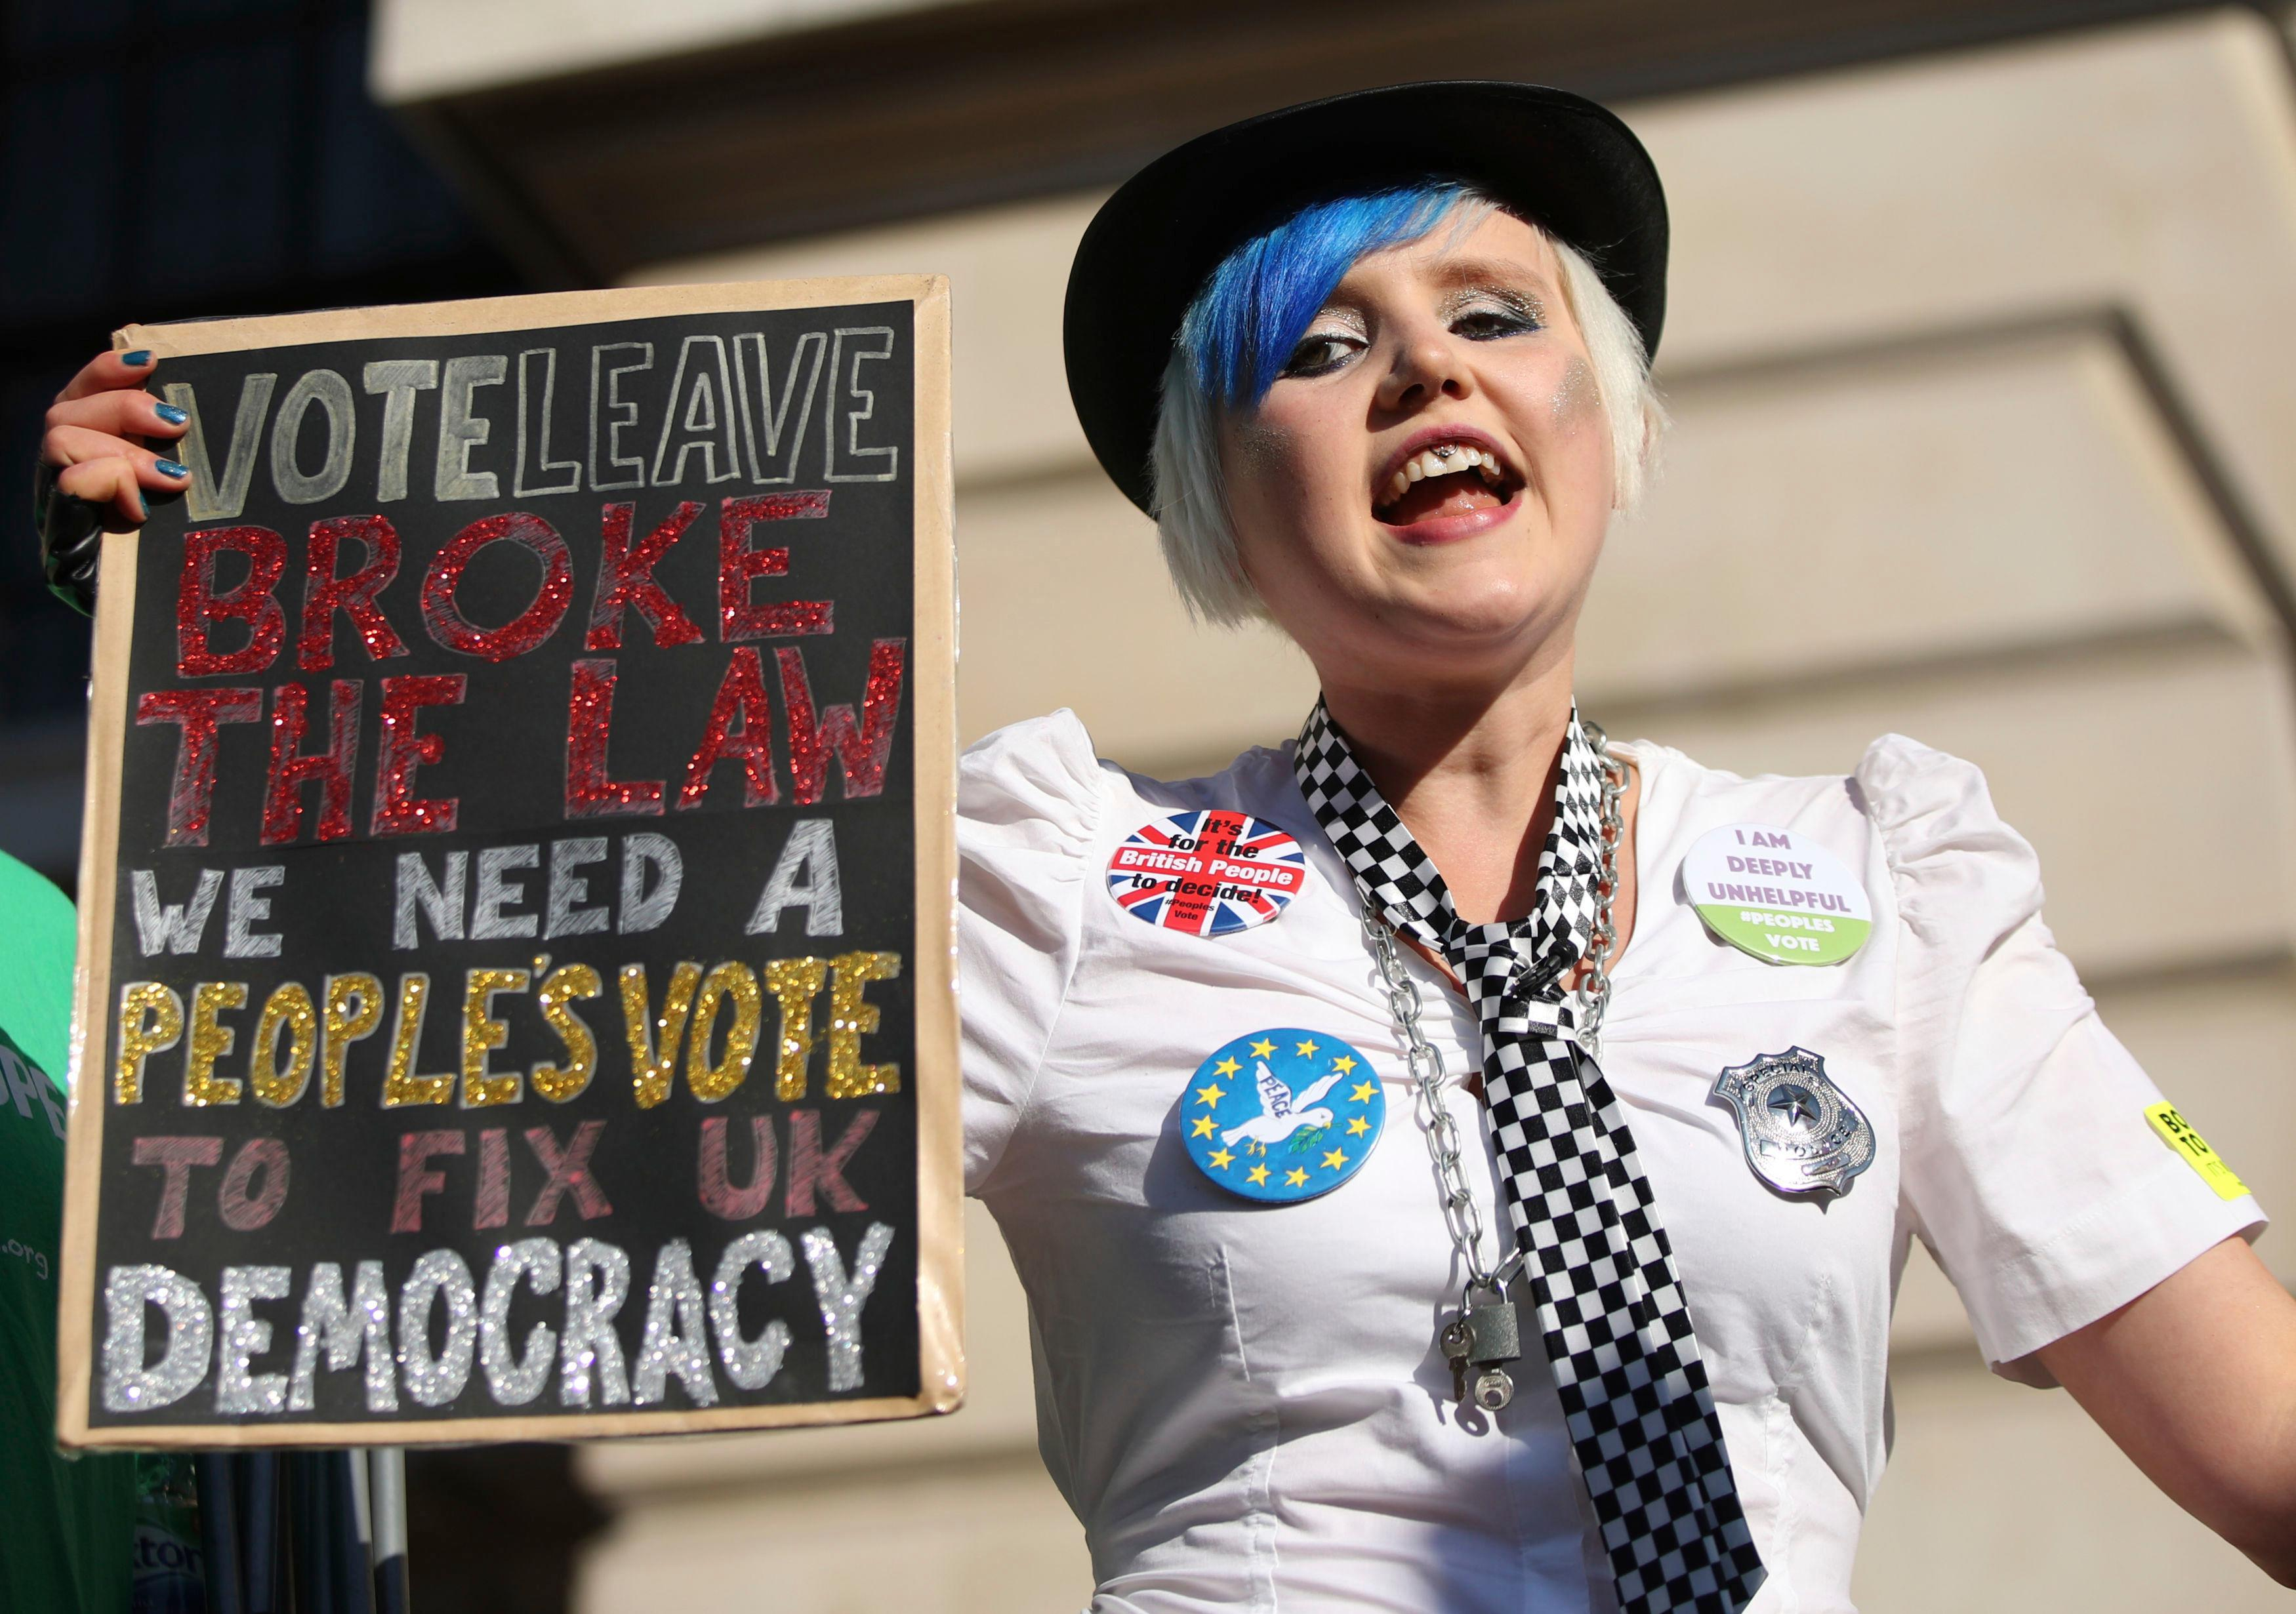 An anti-Brexit campaigners take part in the People's Vote March for the Future in London, a march and rally in support of a second EU referendum, in London, Saturday Oct. 20, 2018. (Yui Mok/PA via AP)